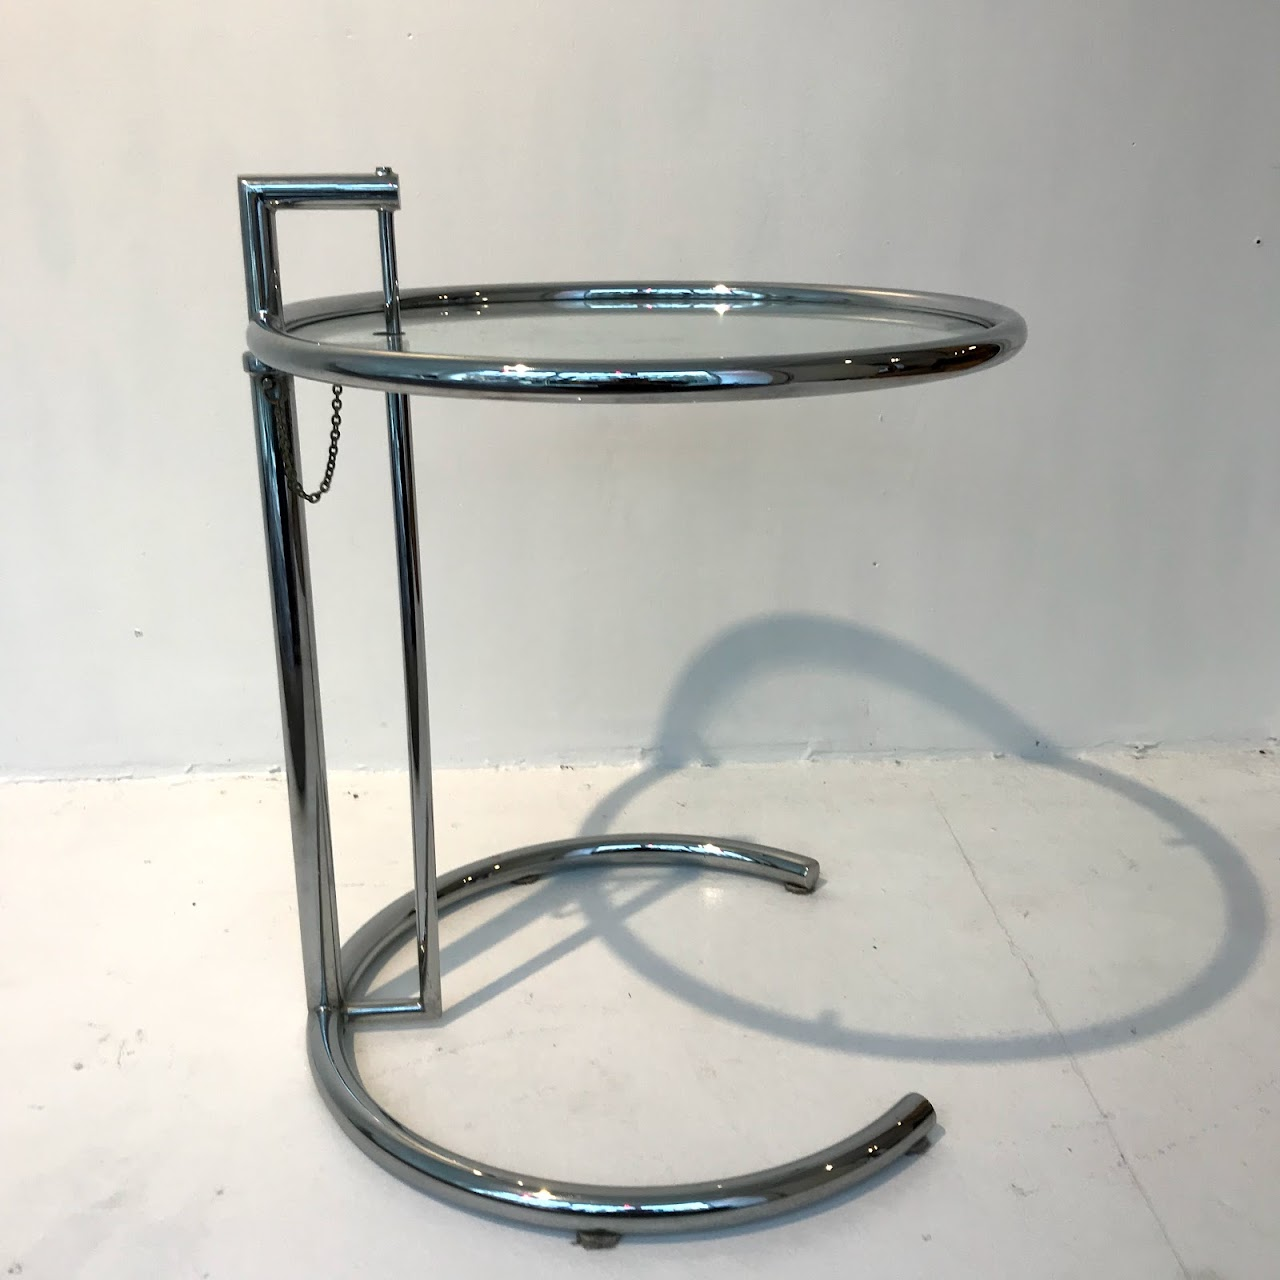 Eileen GrayStyle End Table Shophousingworks - Eileen gray end table